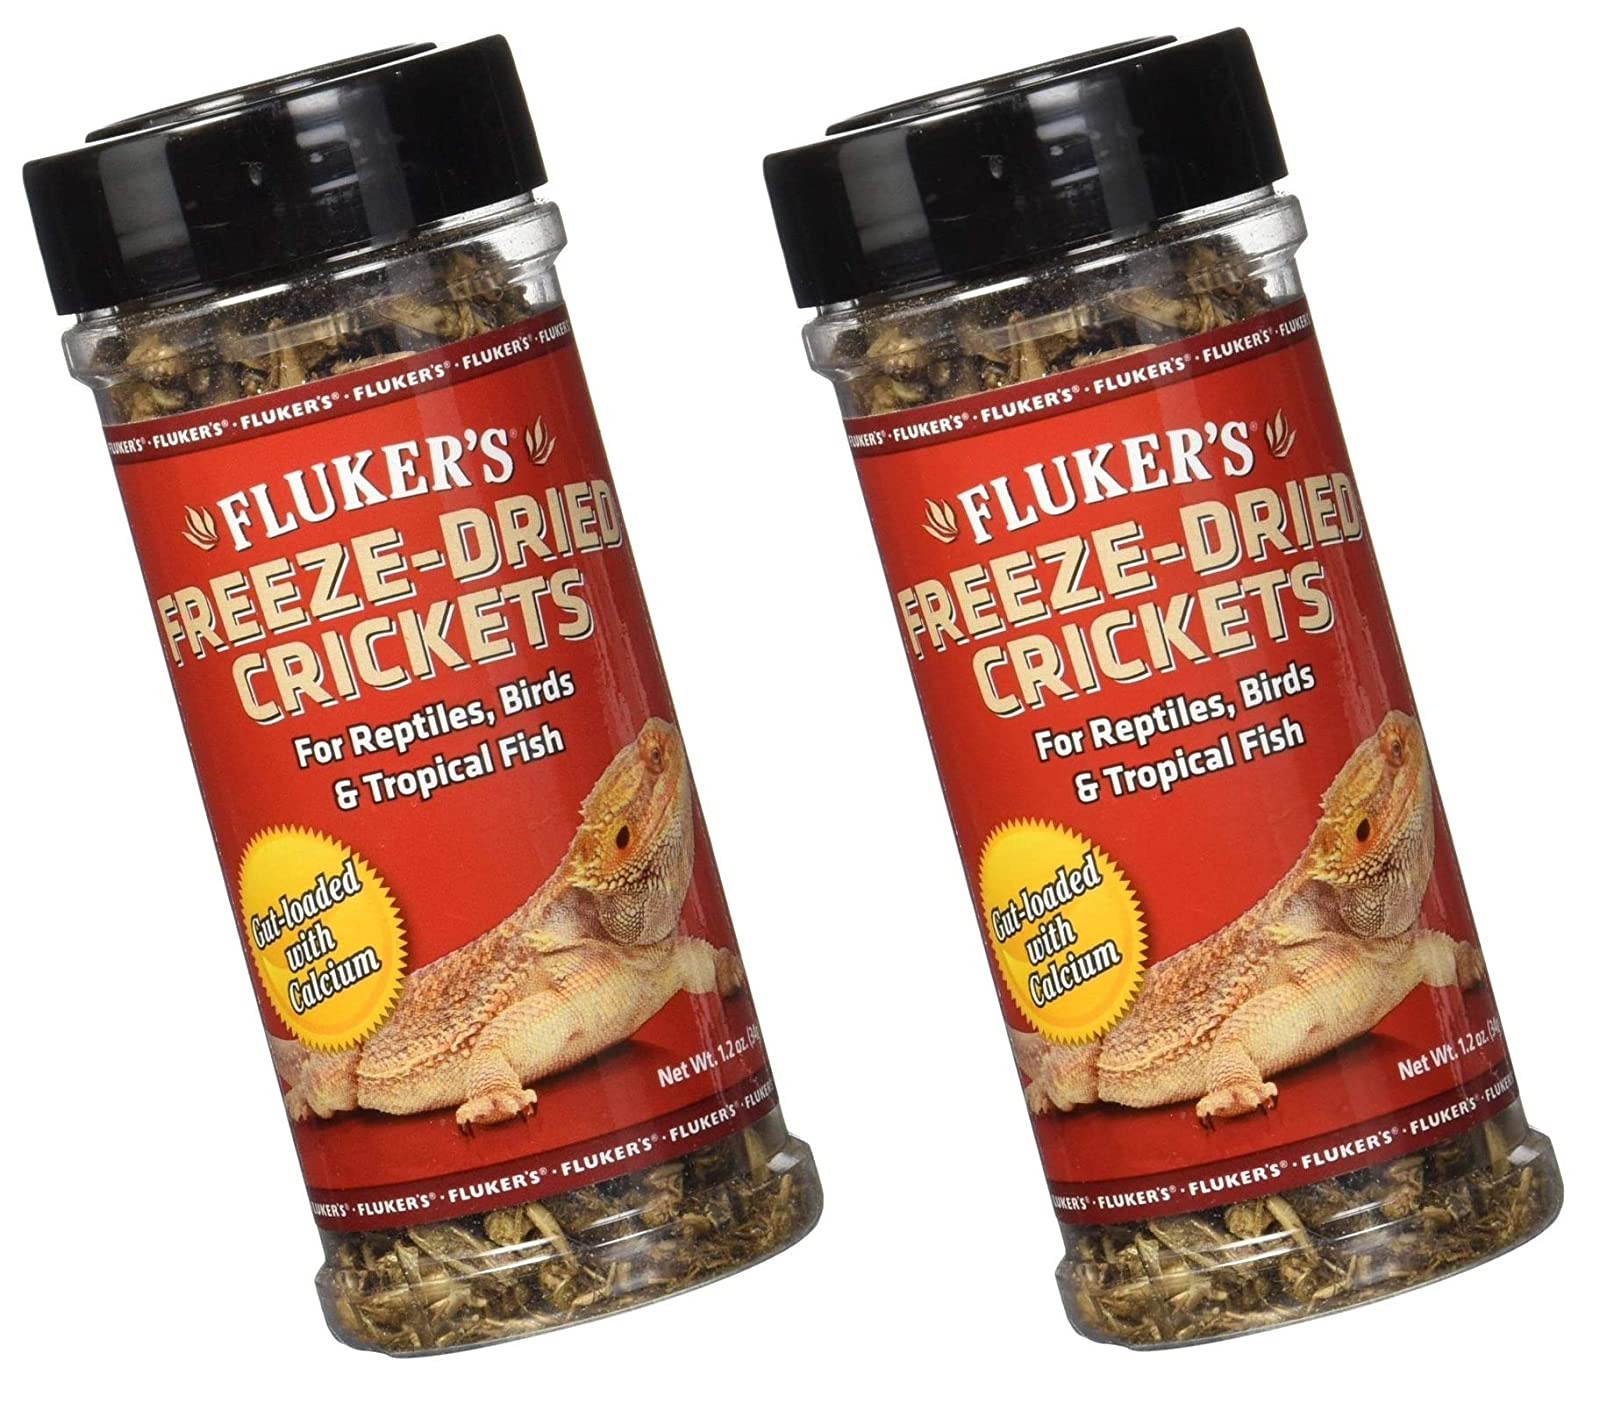 (2 Pack) Fluker's 1.2-Ounce Freeze Dried Crickets 2 Pack - 1